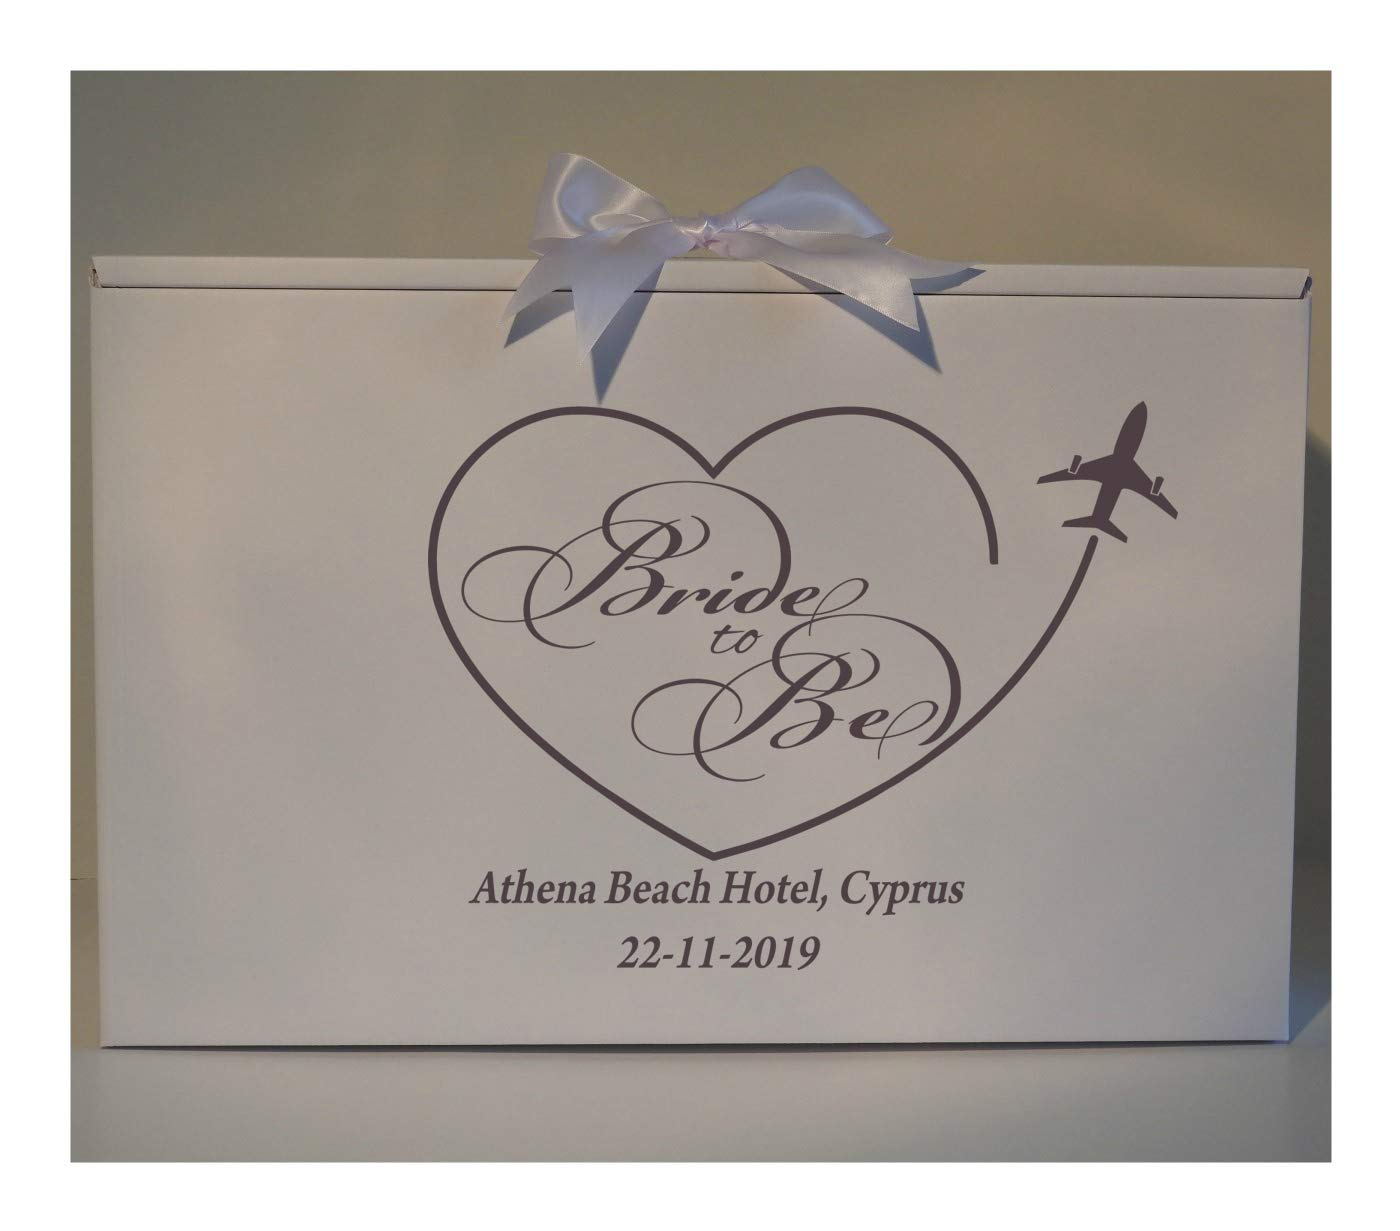 Wedding Dress Travel Box Bride to Be Airline Storage Cabin Size Hand Luggage Acid Free PH Neutral Personalised with Date & Destination Bride Location Handmade